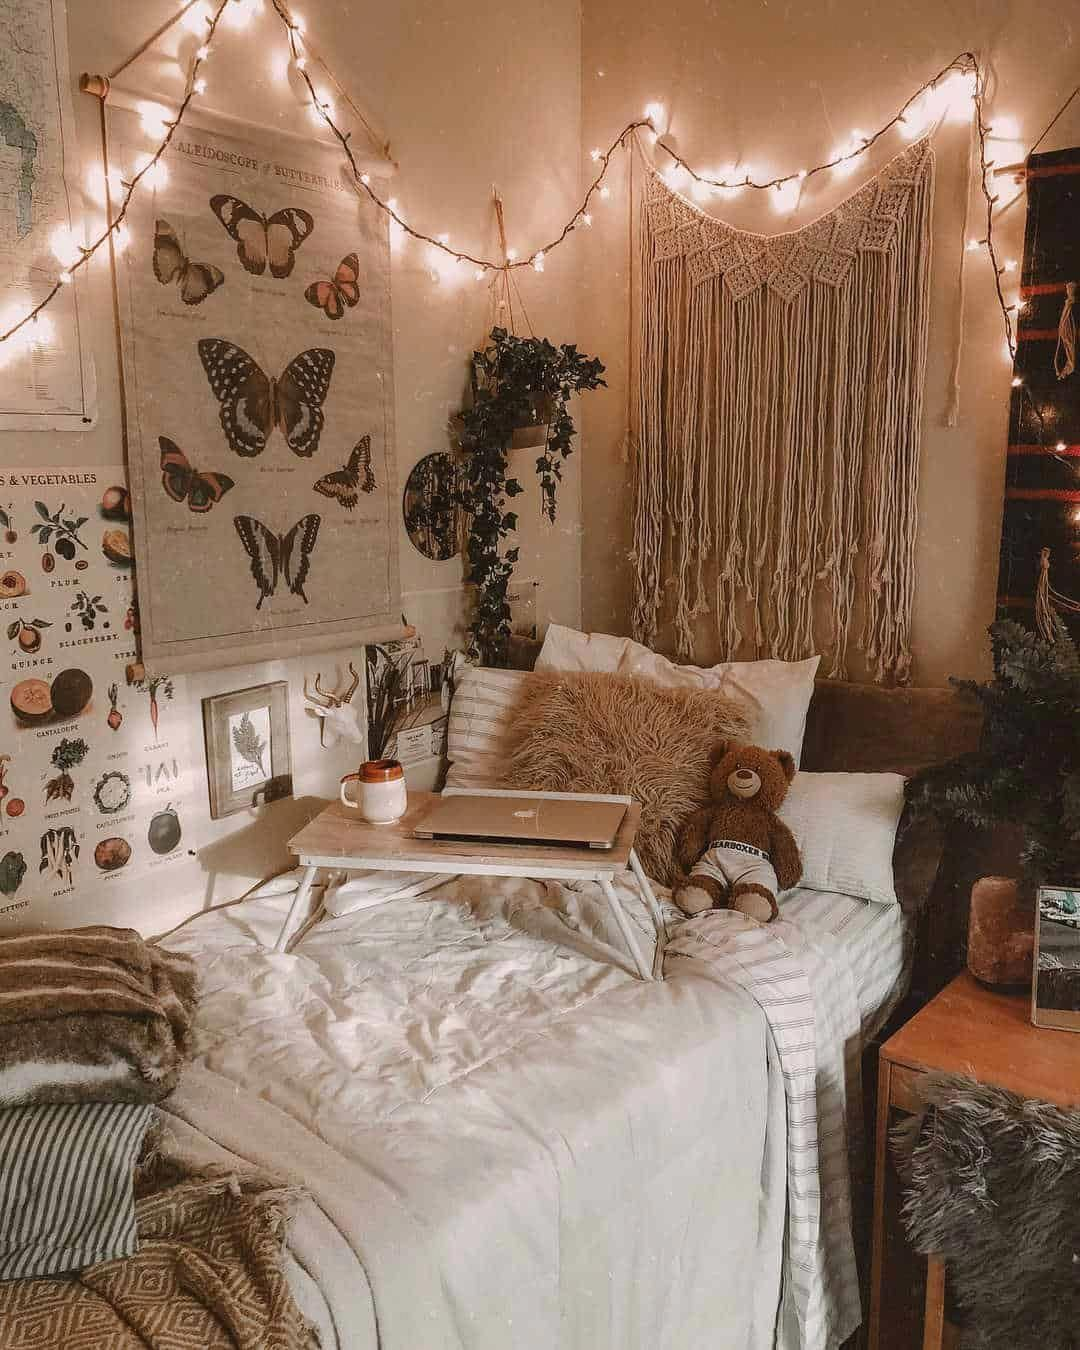 14 Dorm Room Ideas That Are Melting Our Minds RN #roominspo